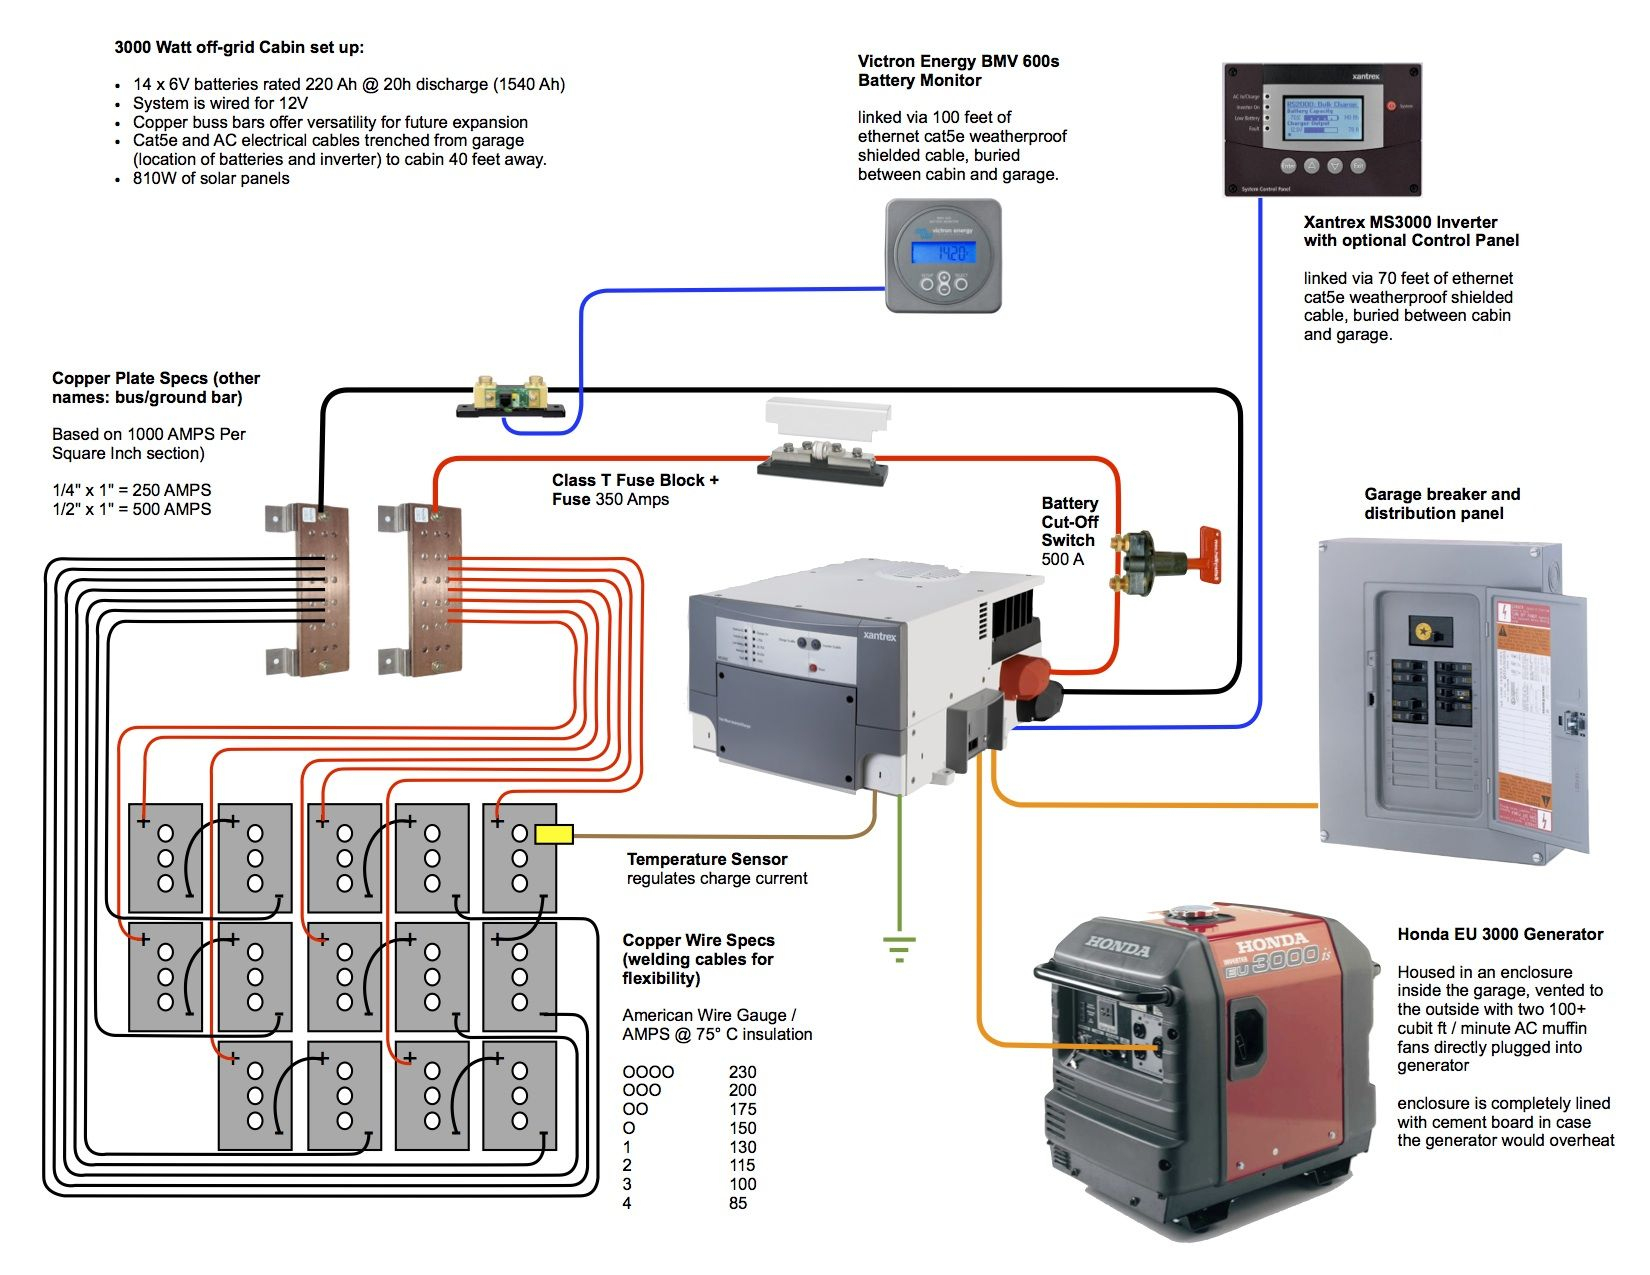 Solar Panel And Generator Wiring For Cabin - Google Search | Out - Off Grid Solar System Wiring Diagram